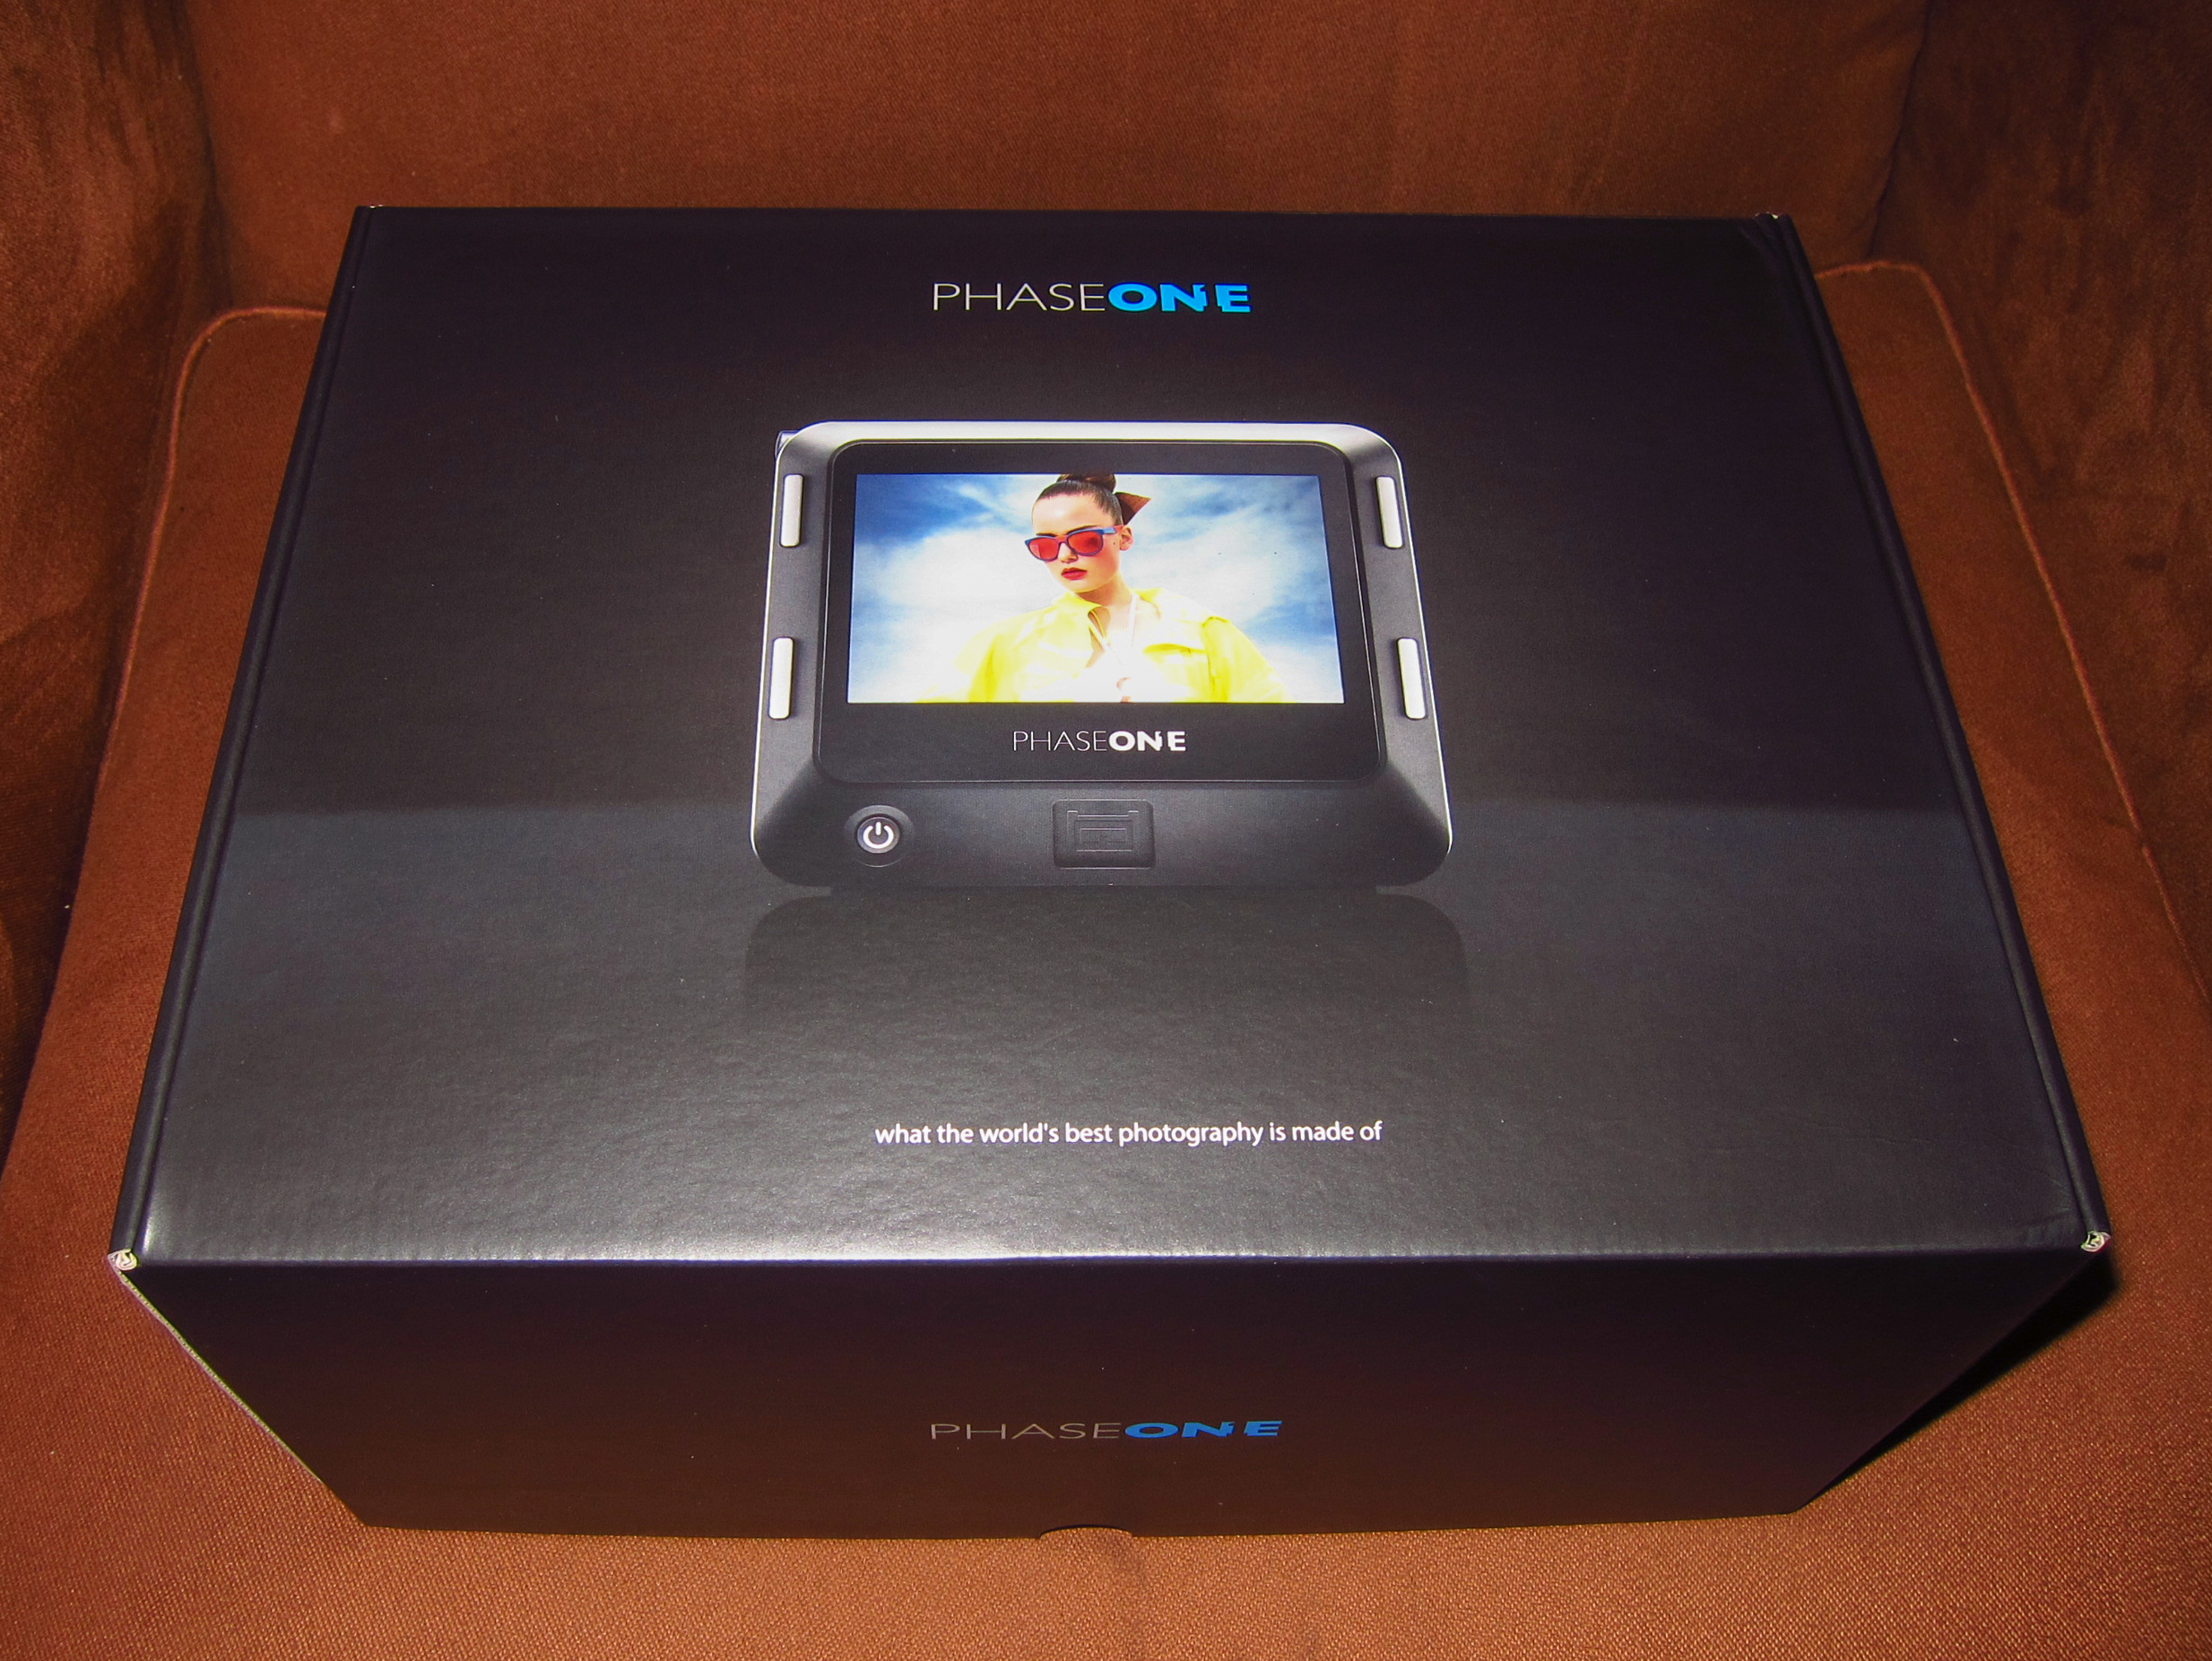 Phase One IQ260 in Box